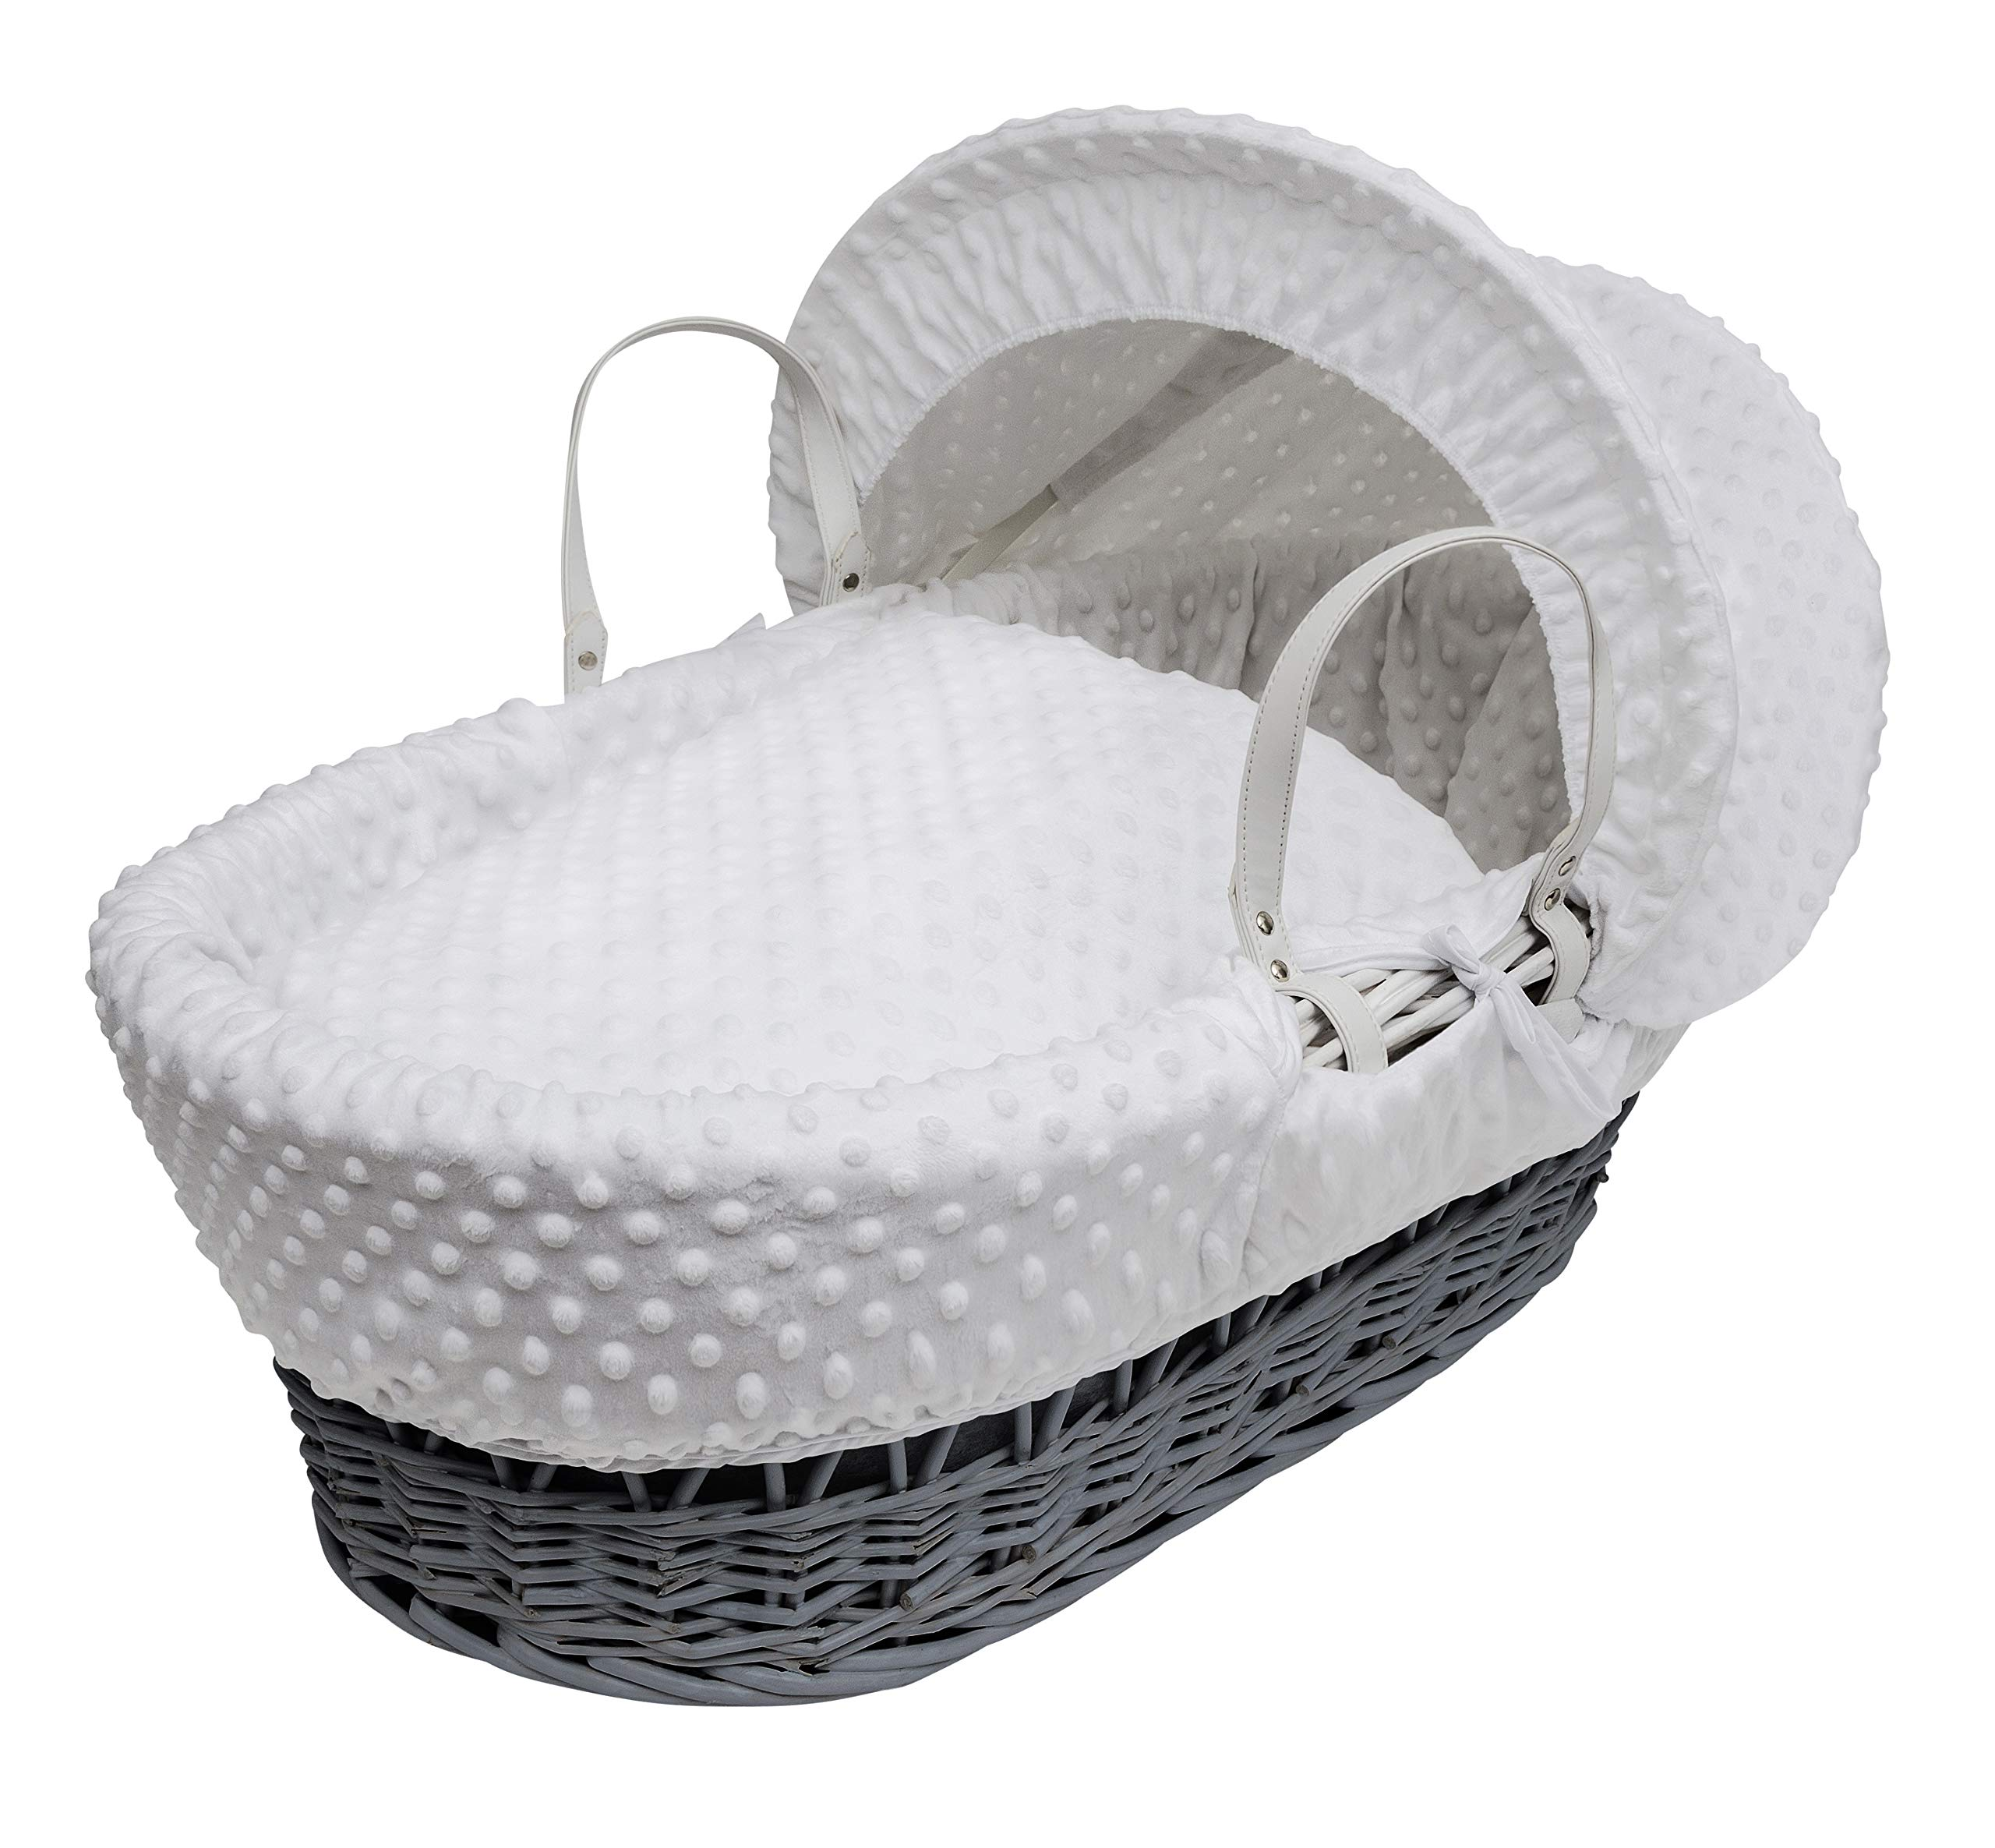 White Dimple on Grey Wicker Padded Moses Basket & Deluxe White Rocking Stand. Elegant Baby Suitable from newborn for up to 9kg, this Moses Basket uses Easy-care Poly Cotton with a soft padding surround Suitable from newborn to 9 months It also includes a comfortable mattress and an adjustable hood perfect to create a cosy sleeping space for your precious little one 2